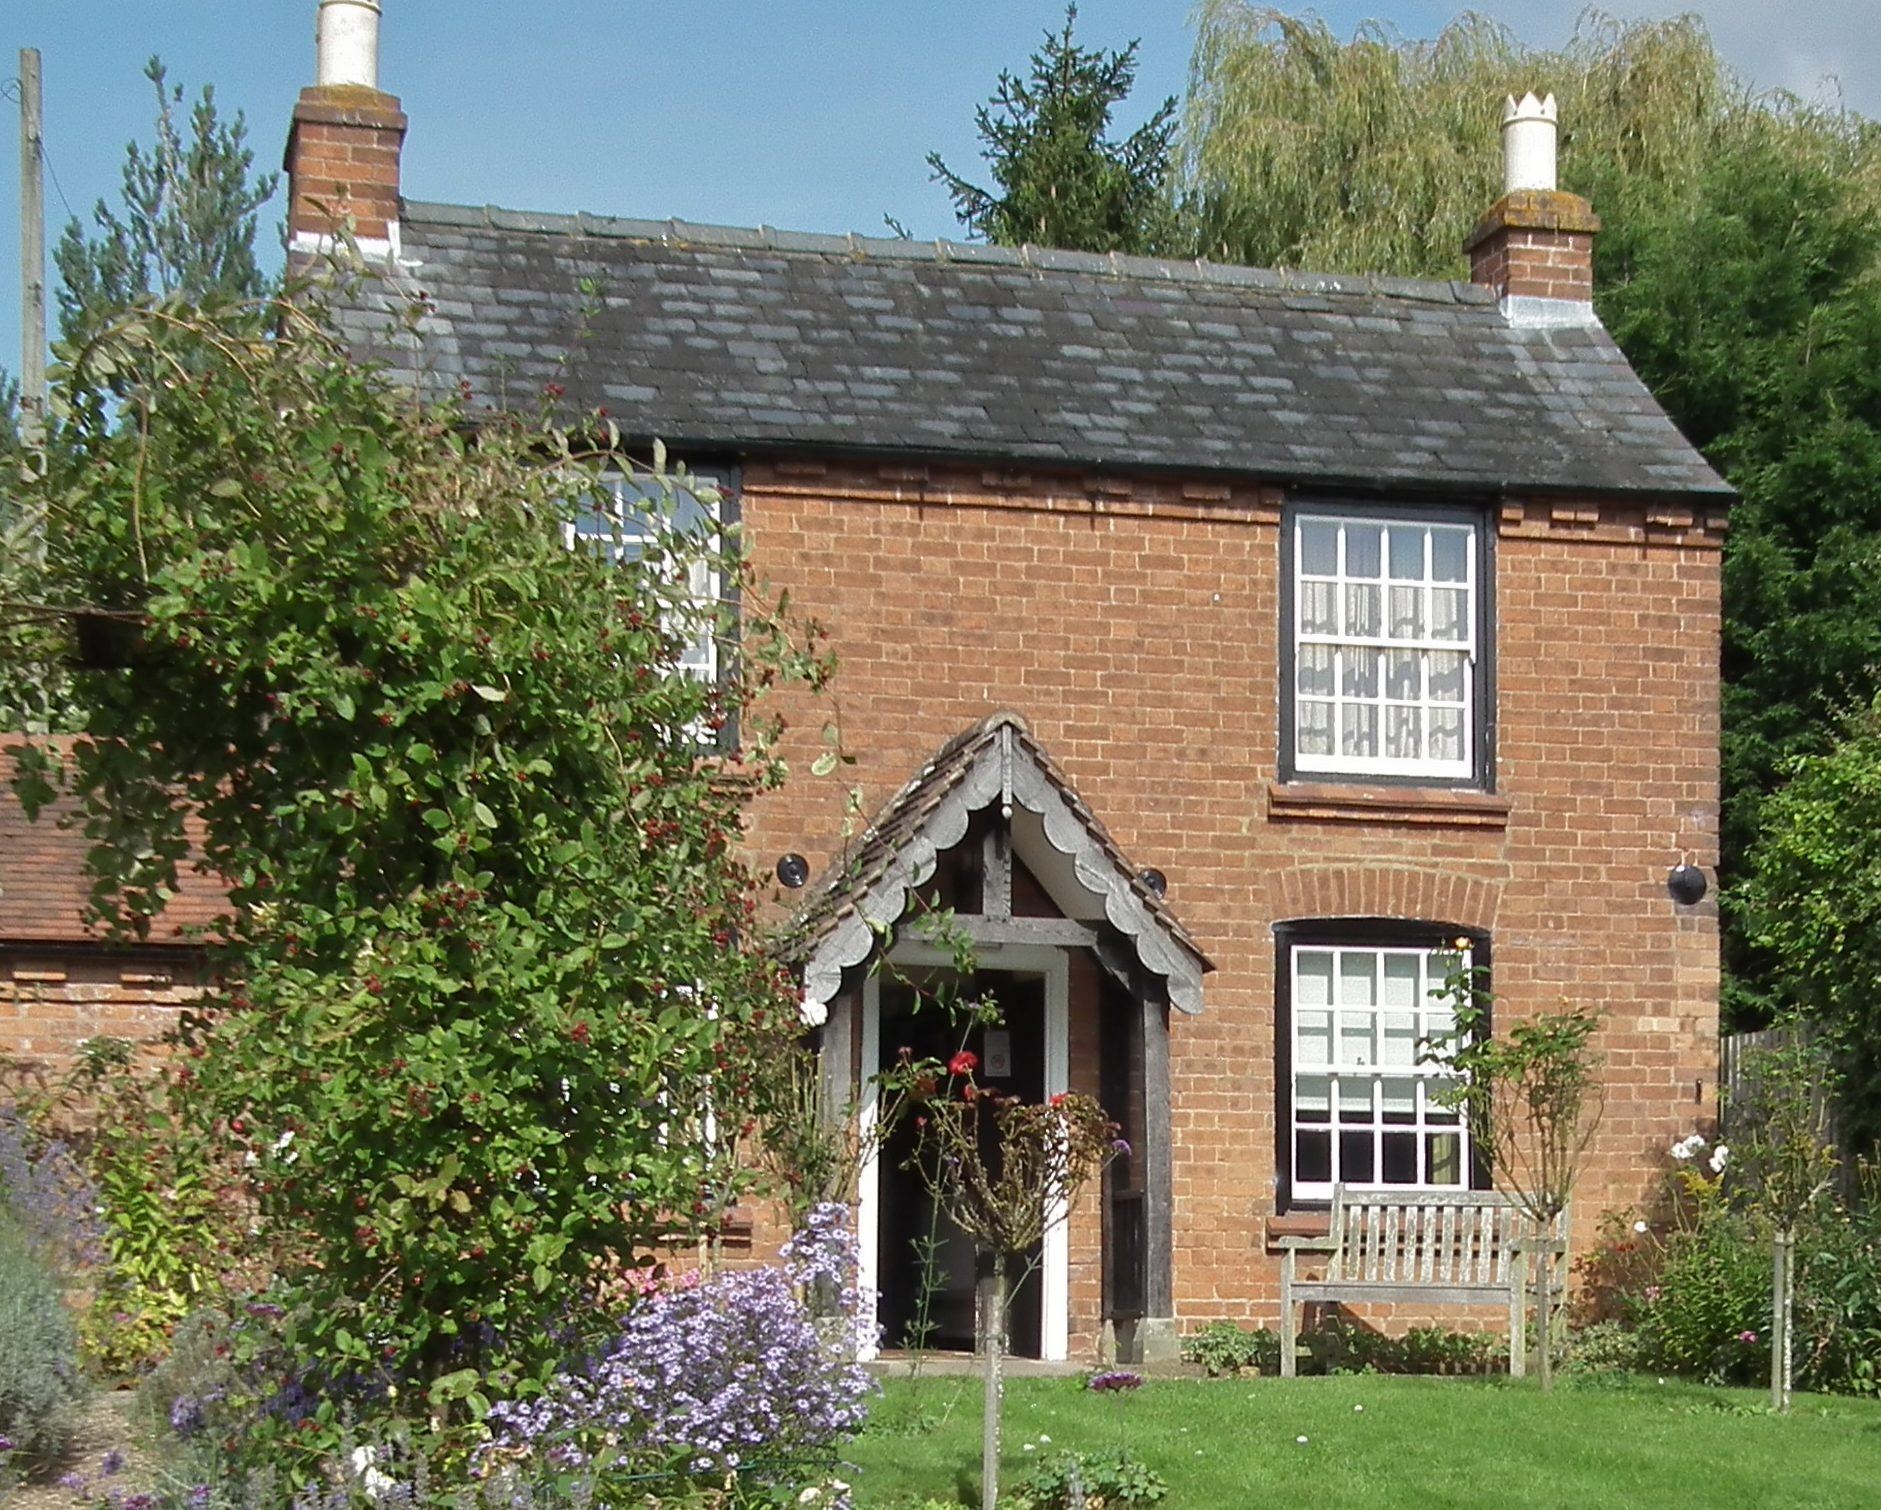 Photo of Elgar's Birthplace in Worcestershire